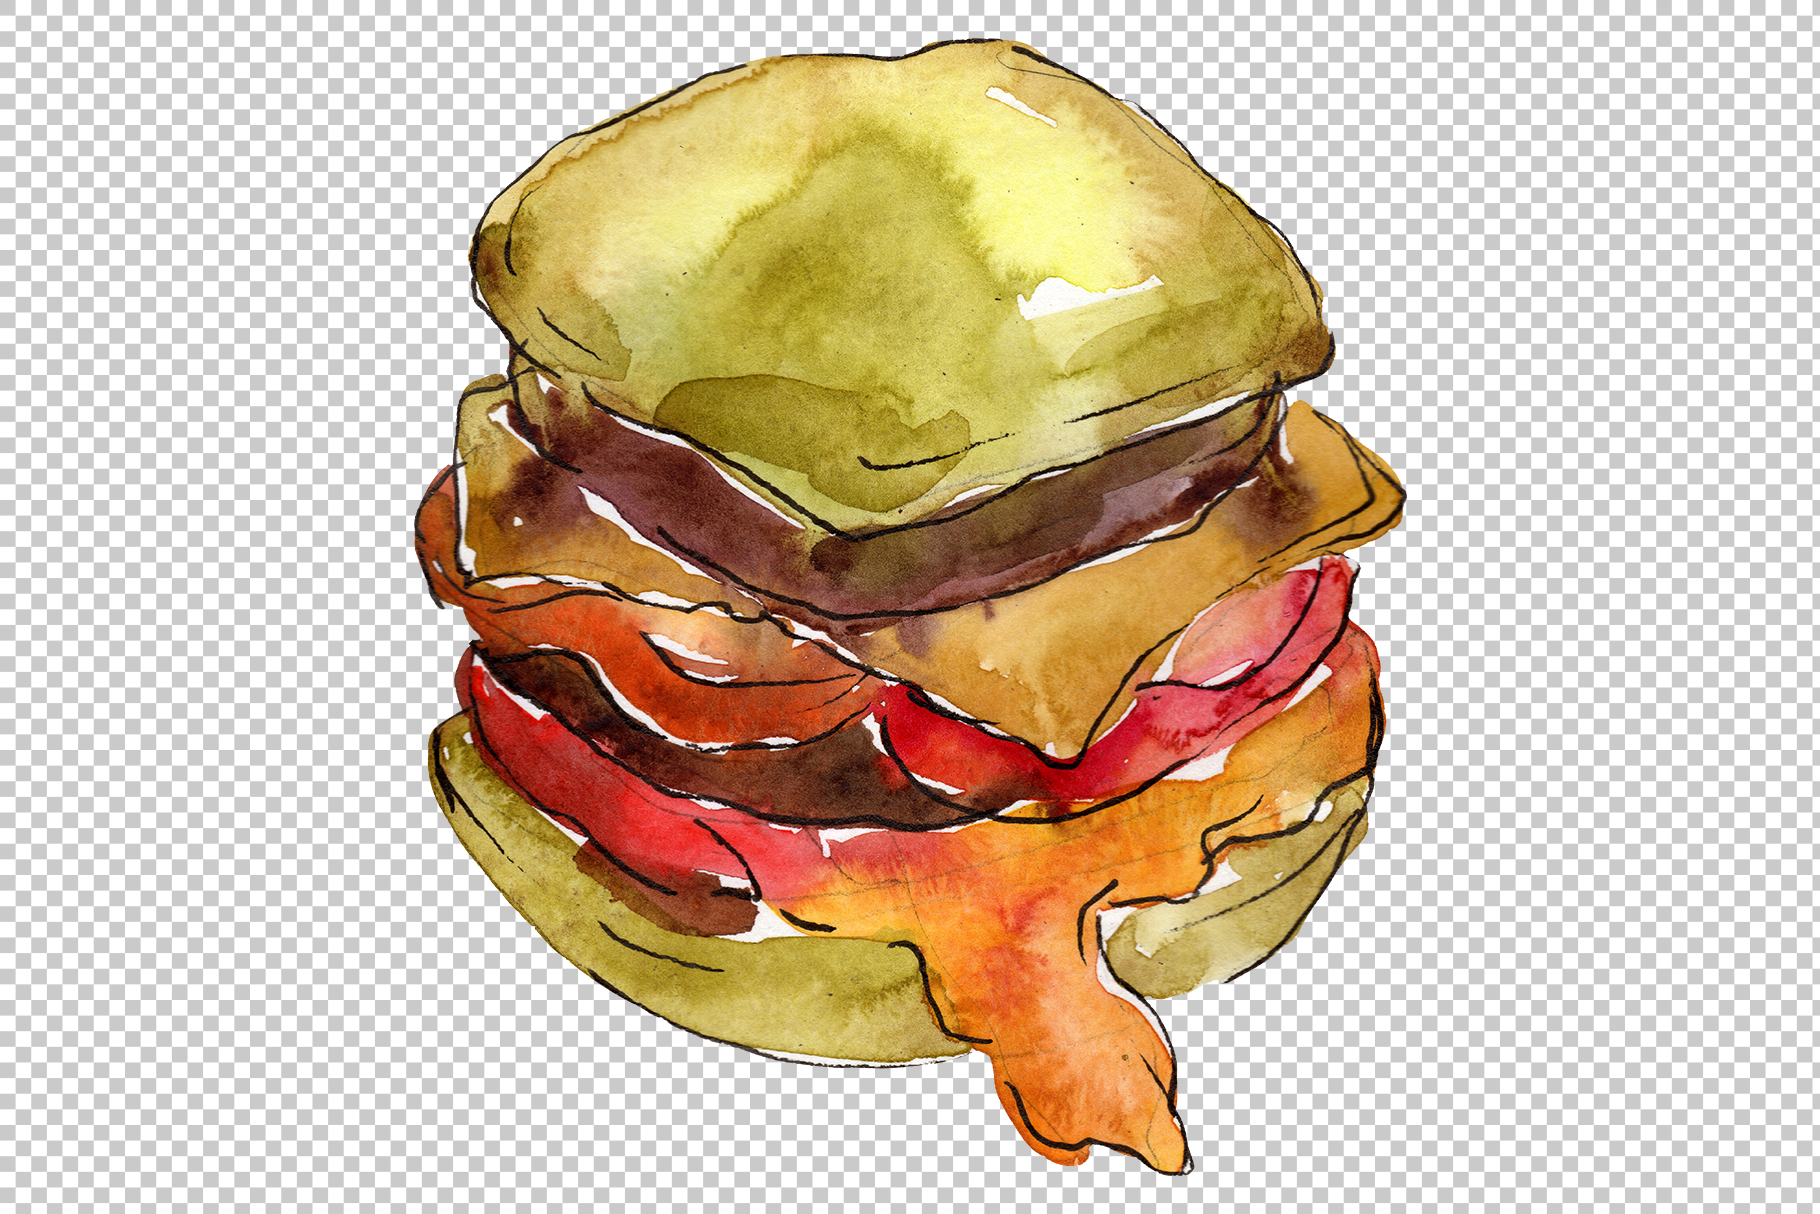 Hamburger for gentleman watercolor png example image 6